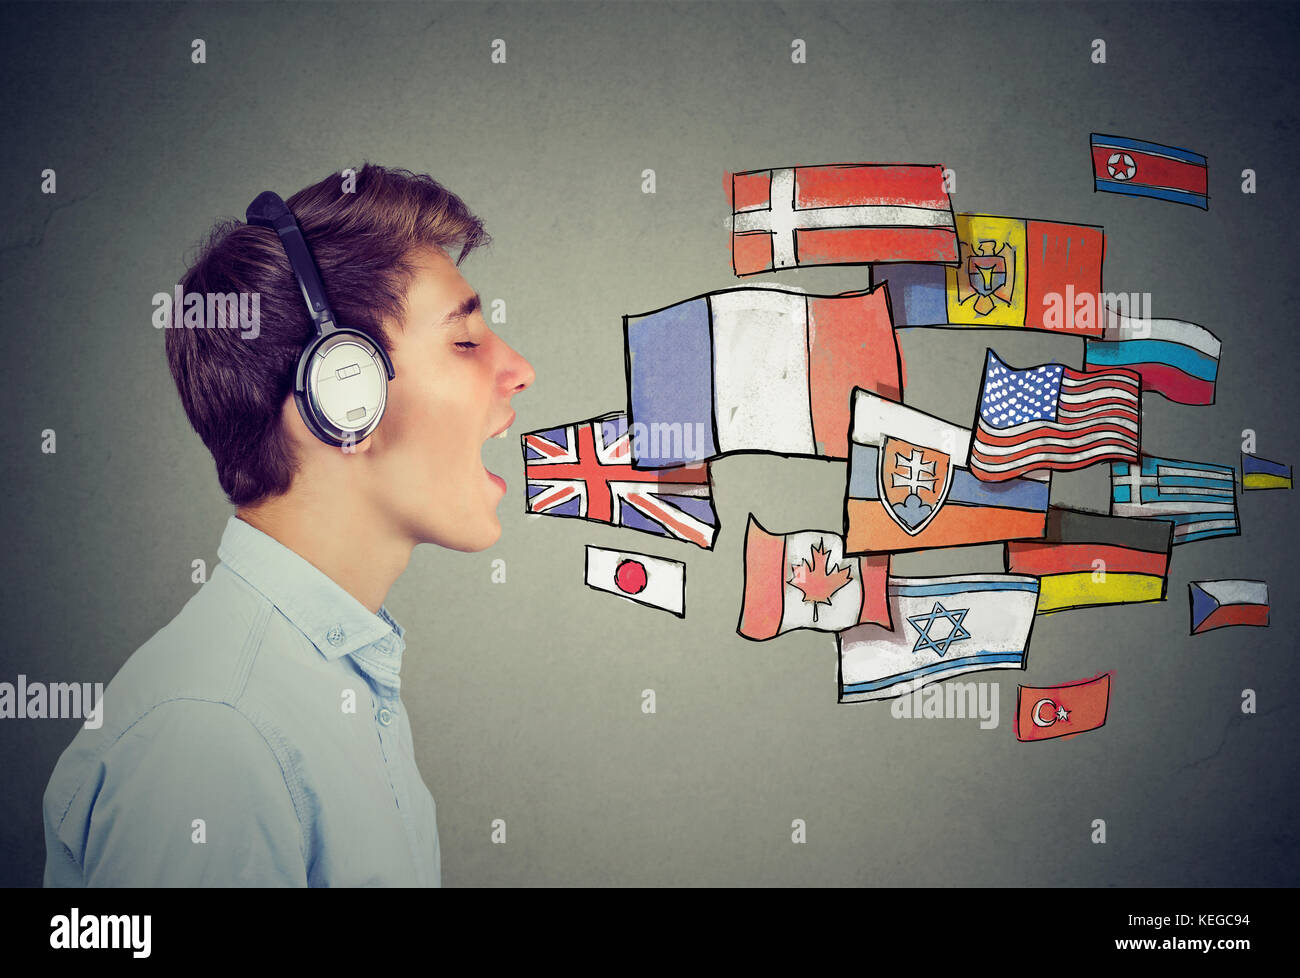 Young man learning different languages - Stock Image